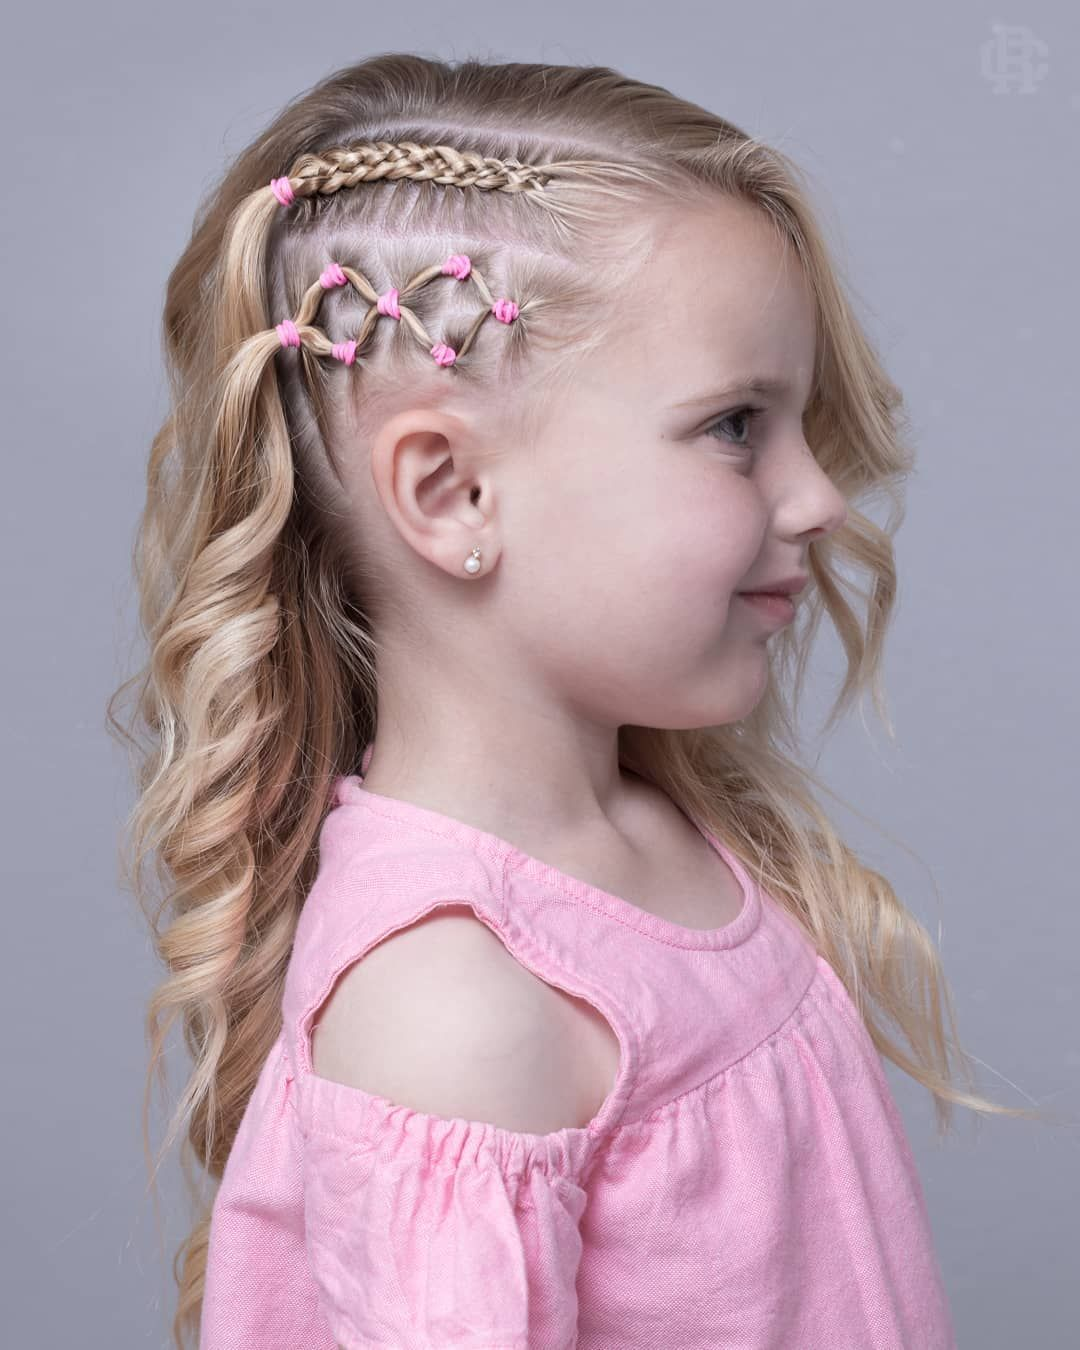 160 Braids Hairstyle Ideas For Little Kids 2019 - Soflyme - Hair Beauty